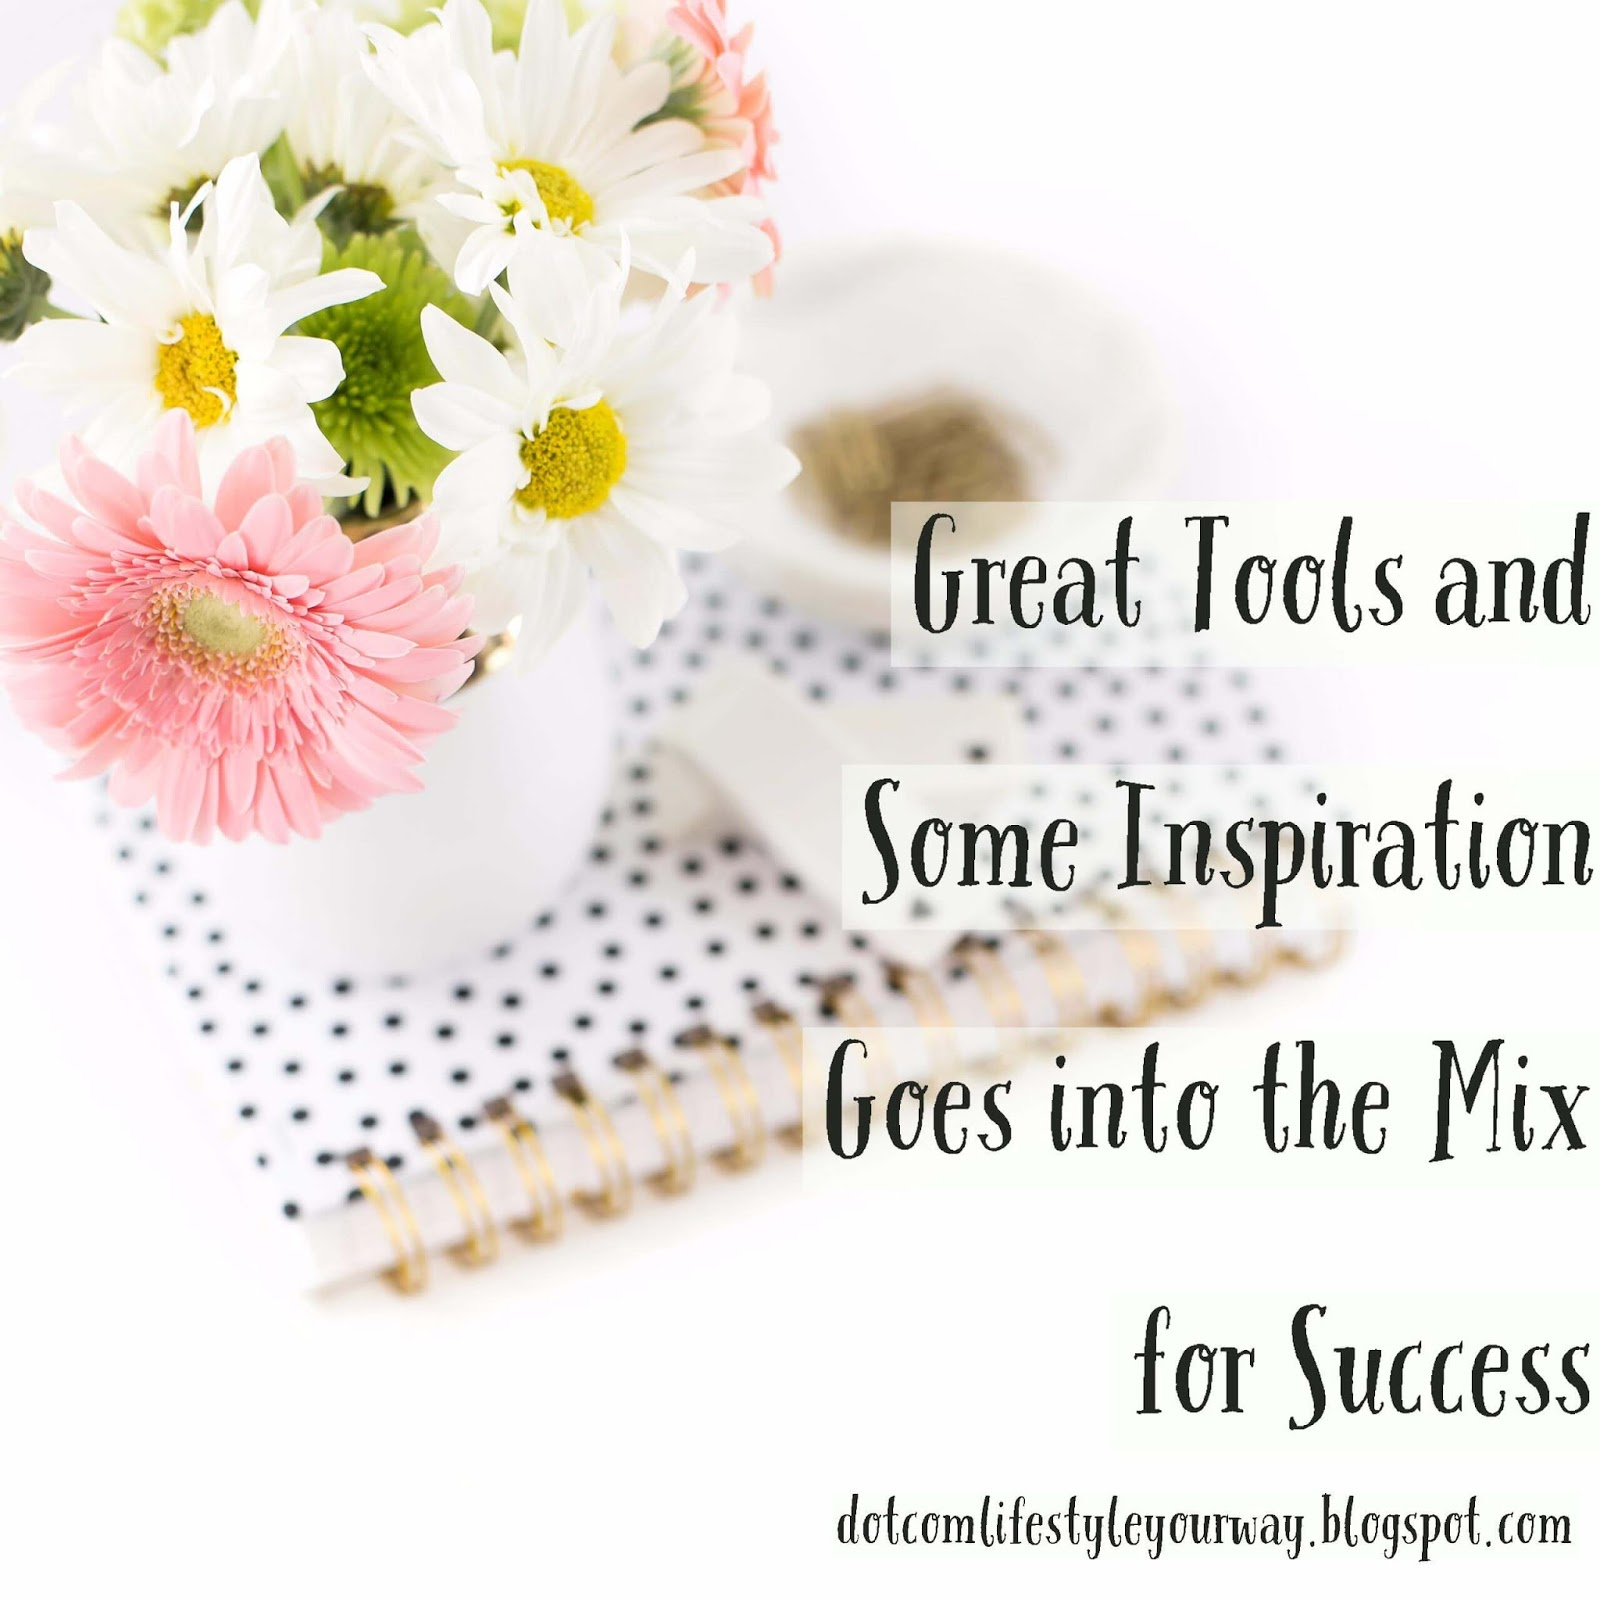 Great tools, inspiration and motivation goes into the mix for success.